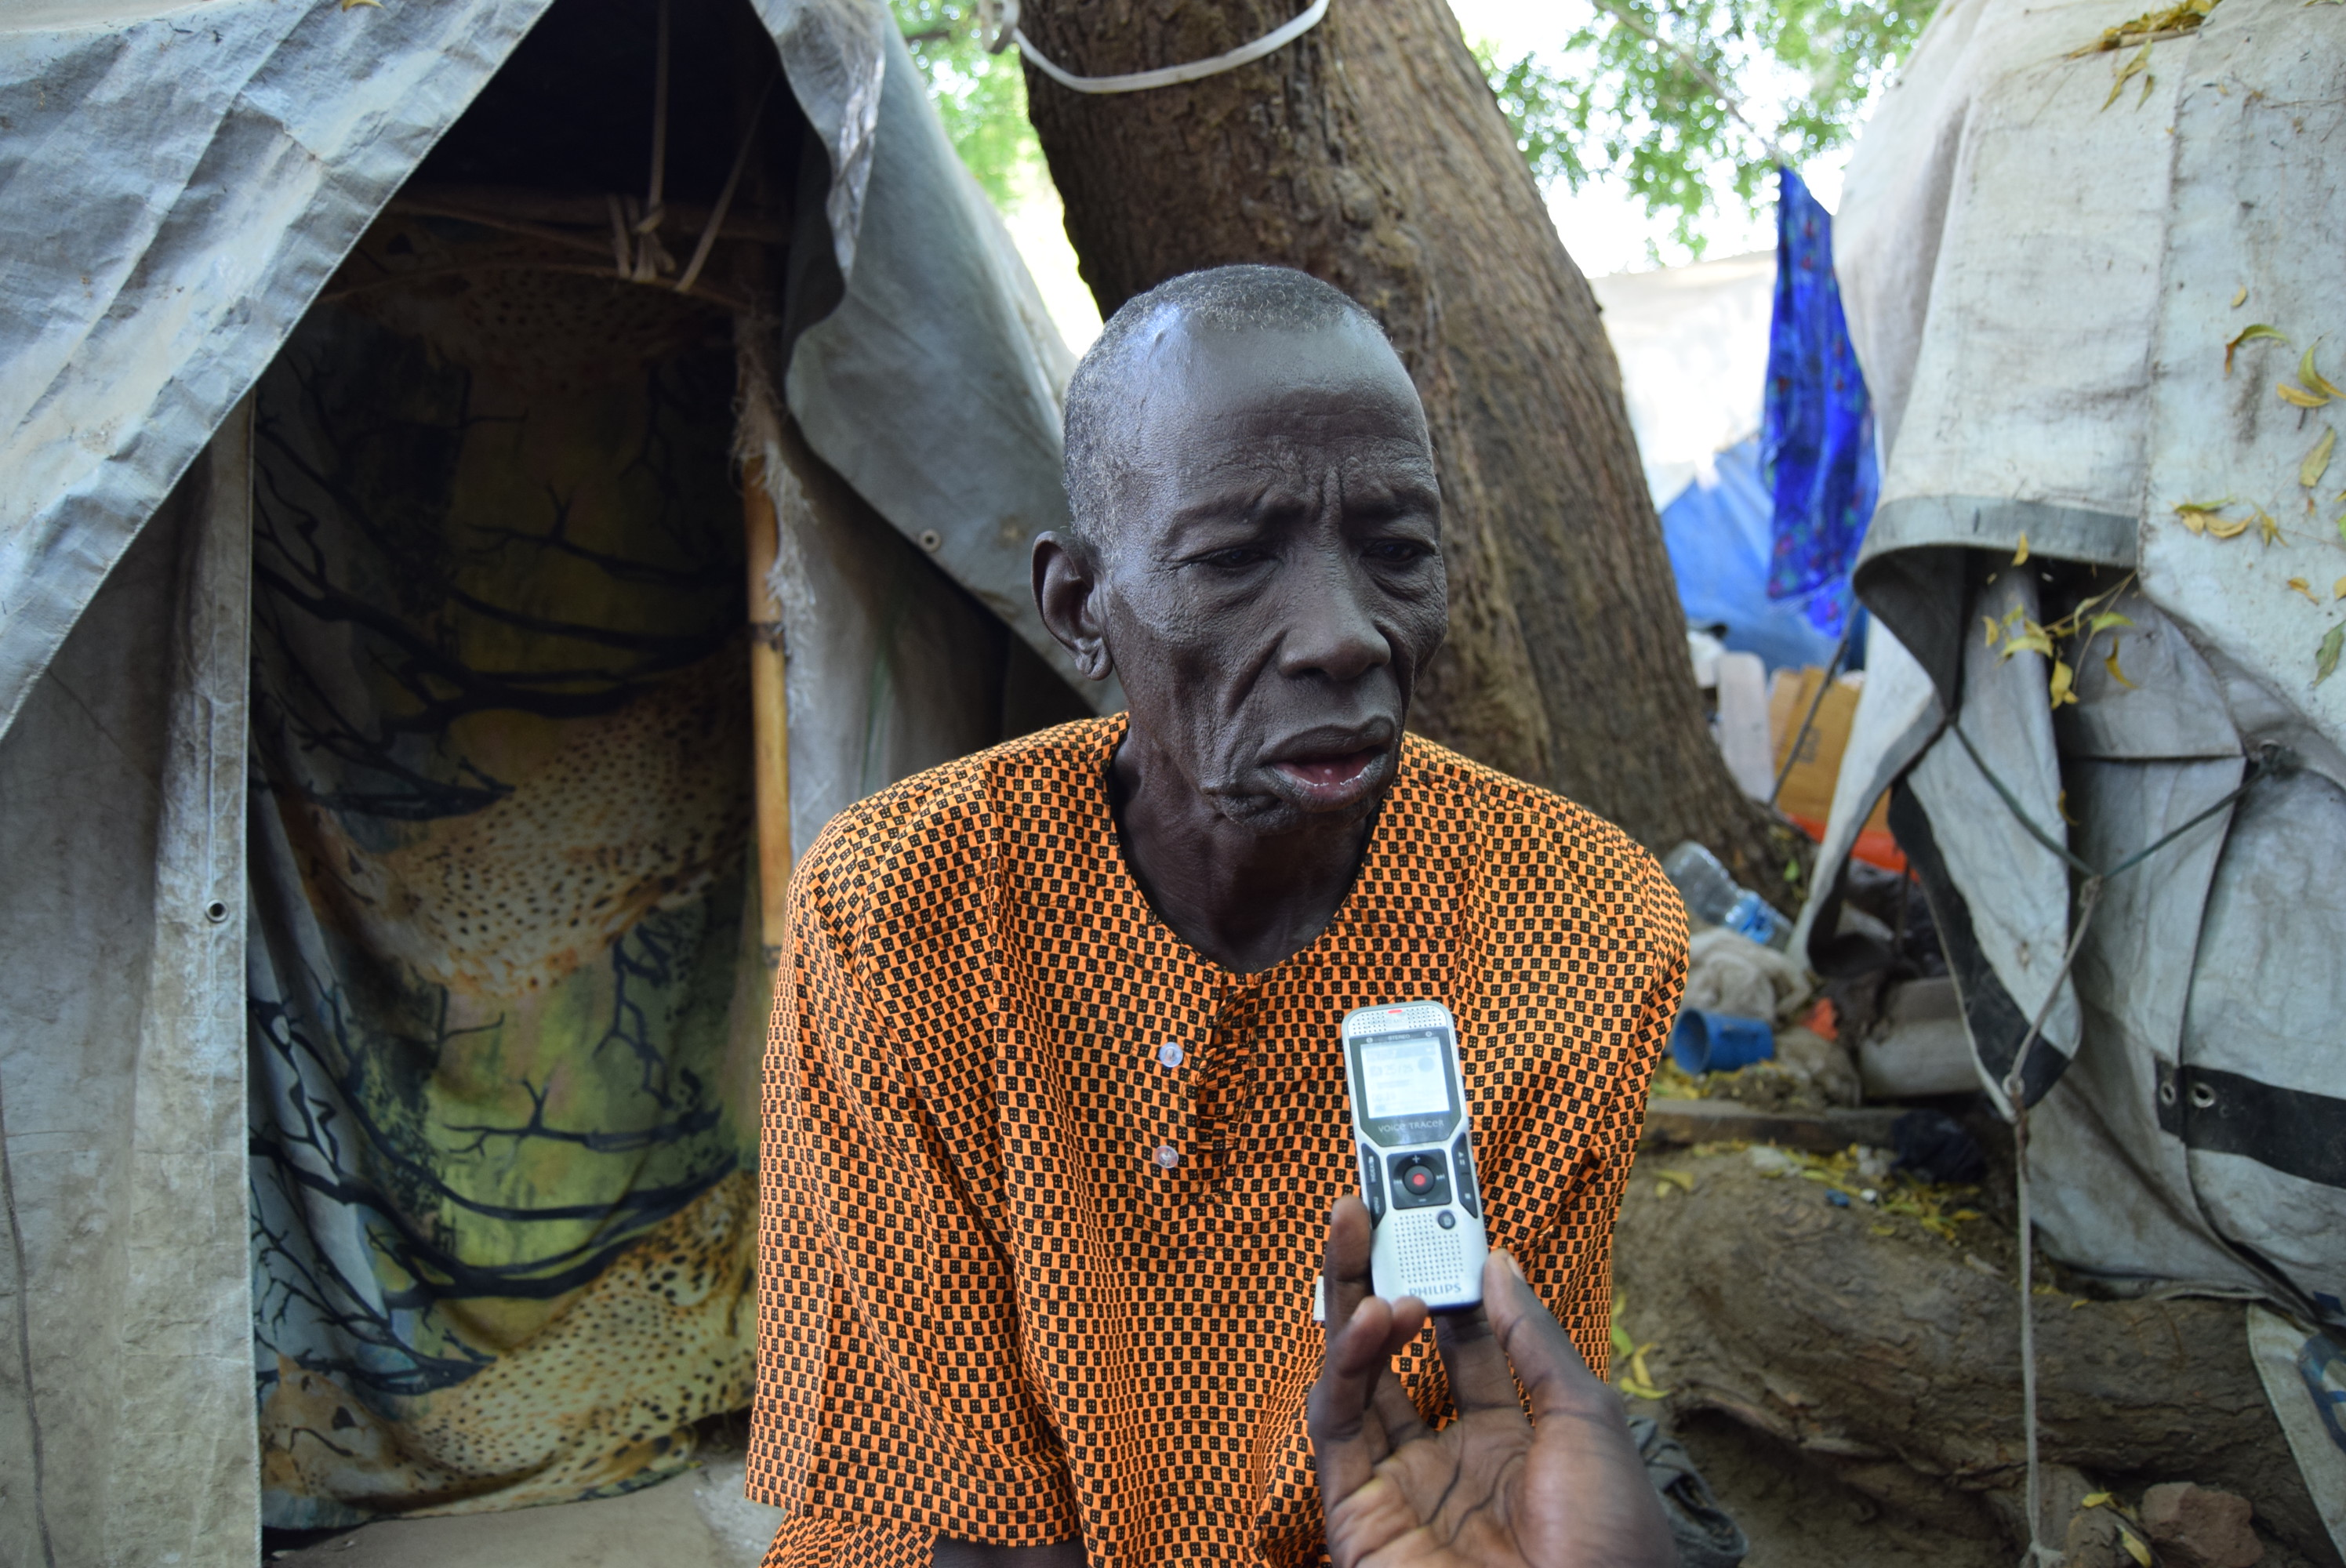 An older man is interviewed in Juba, South Sudan.